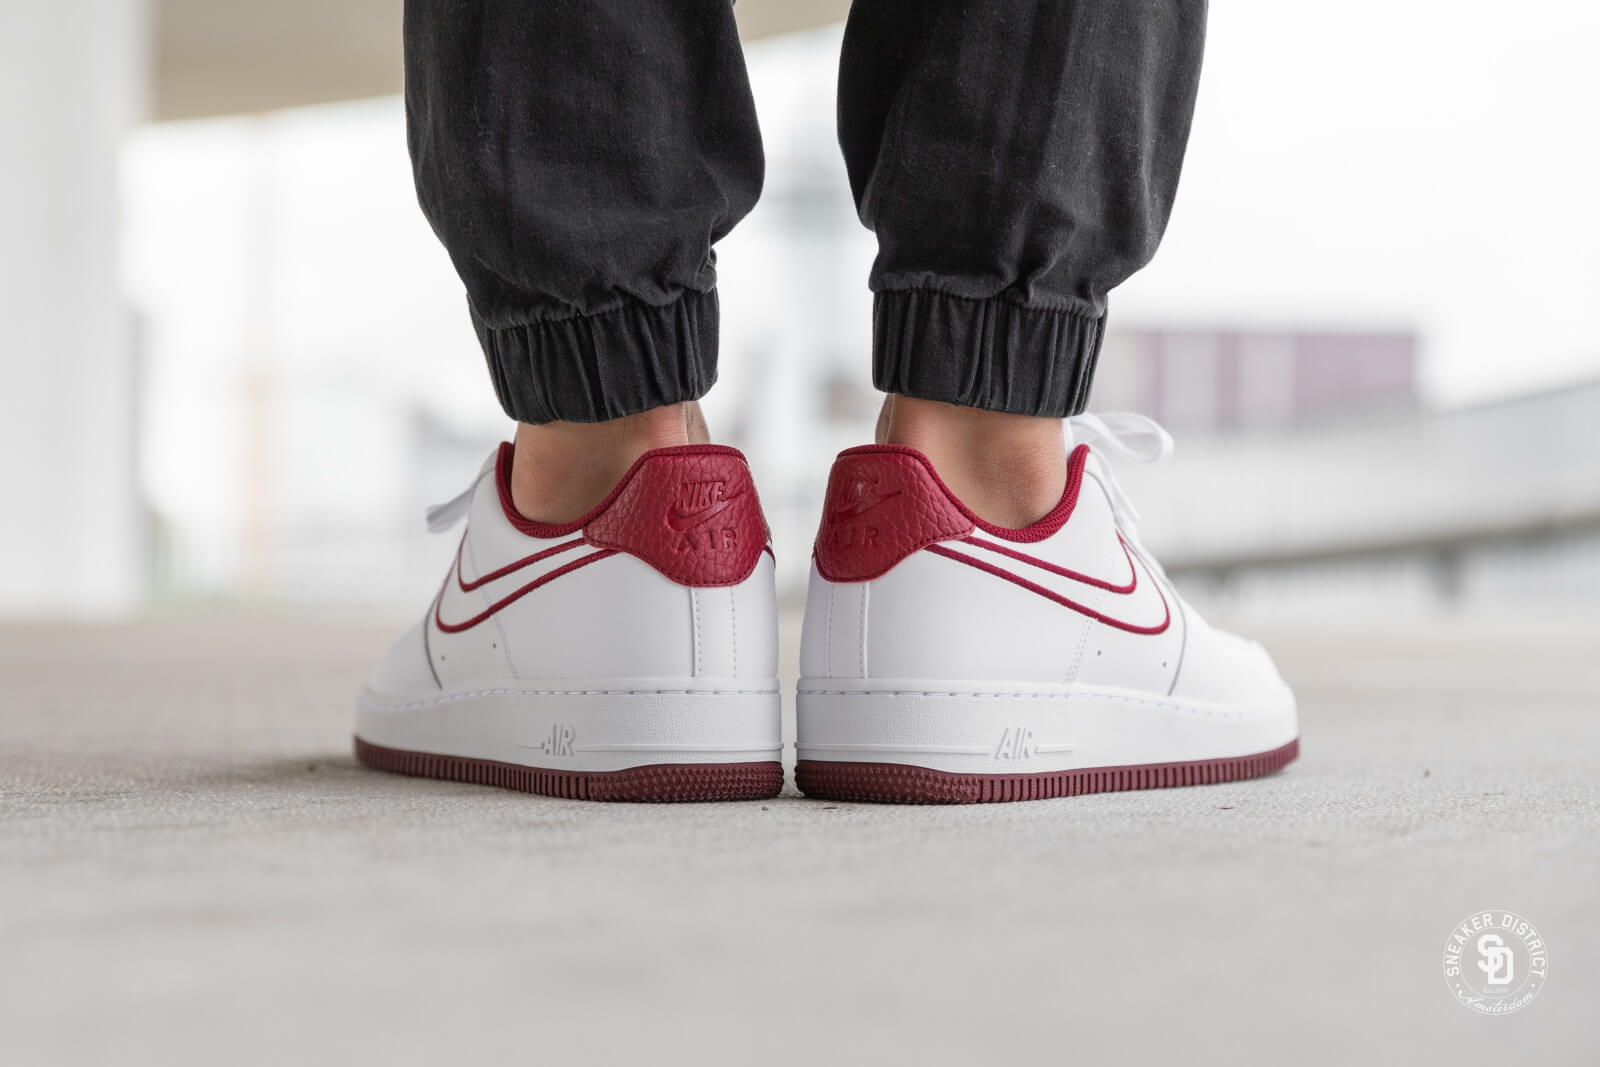 nike air force blanche et rouge 1 07